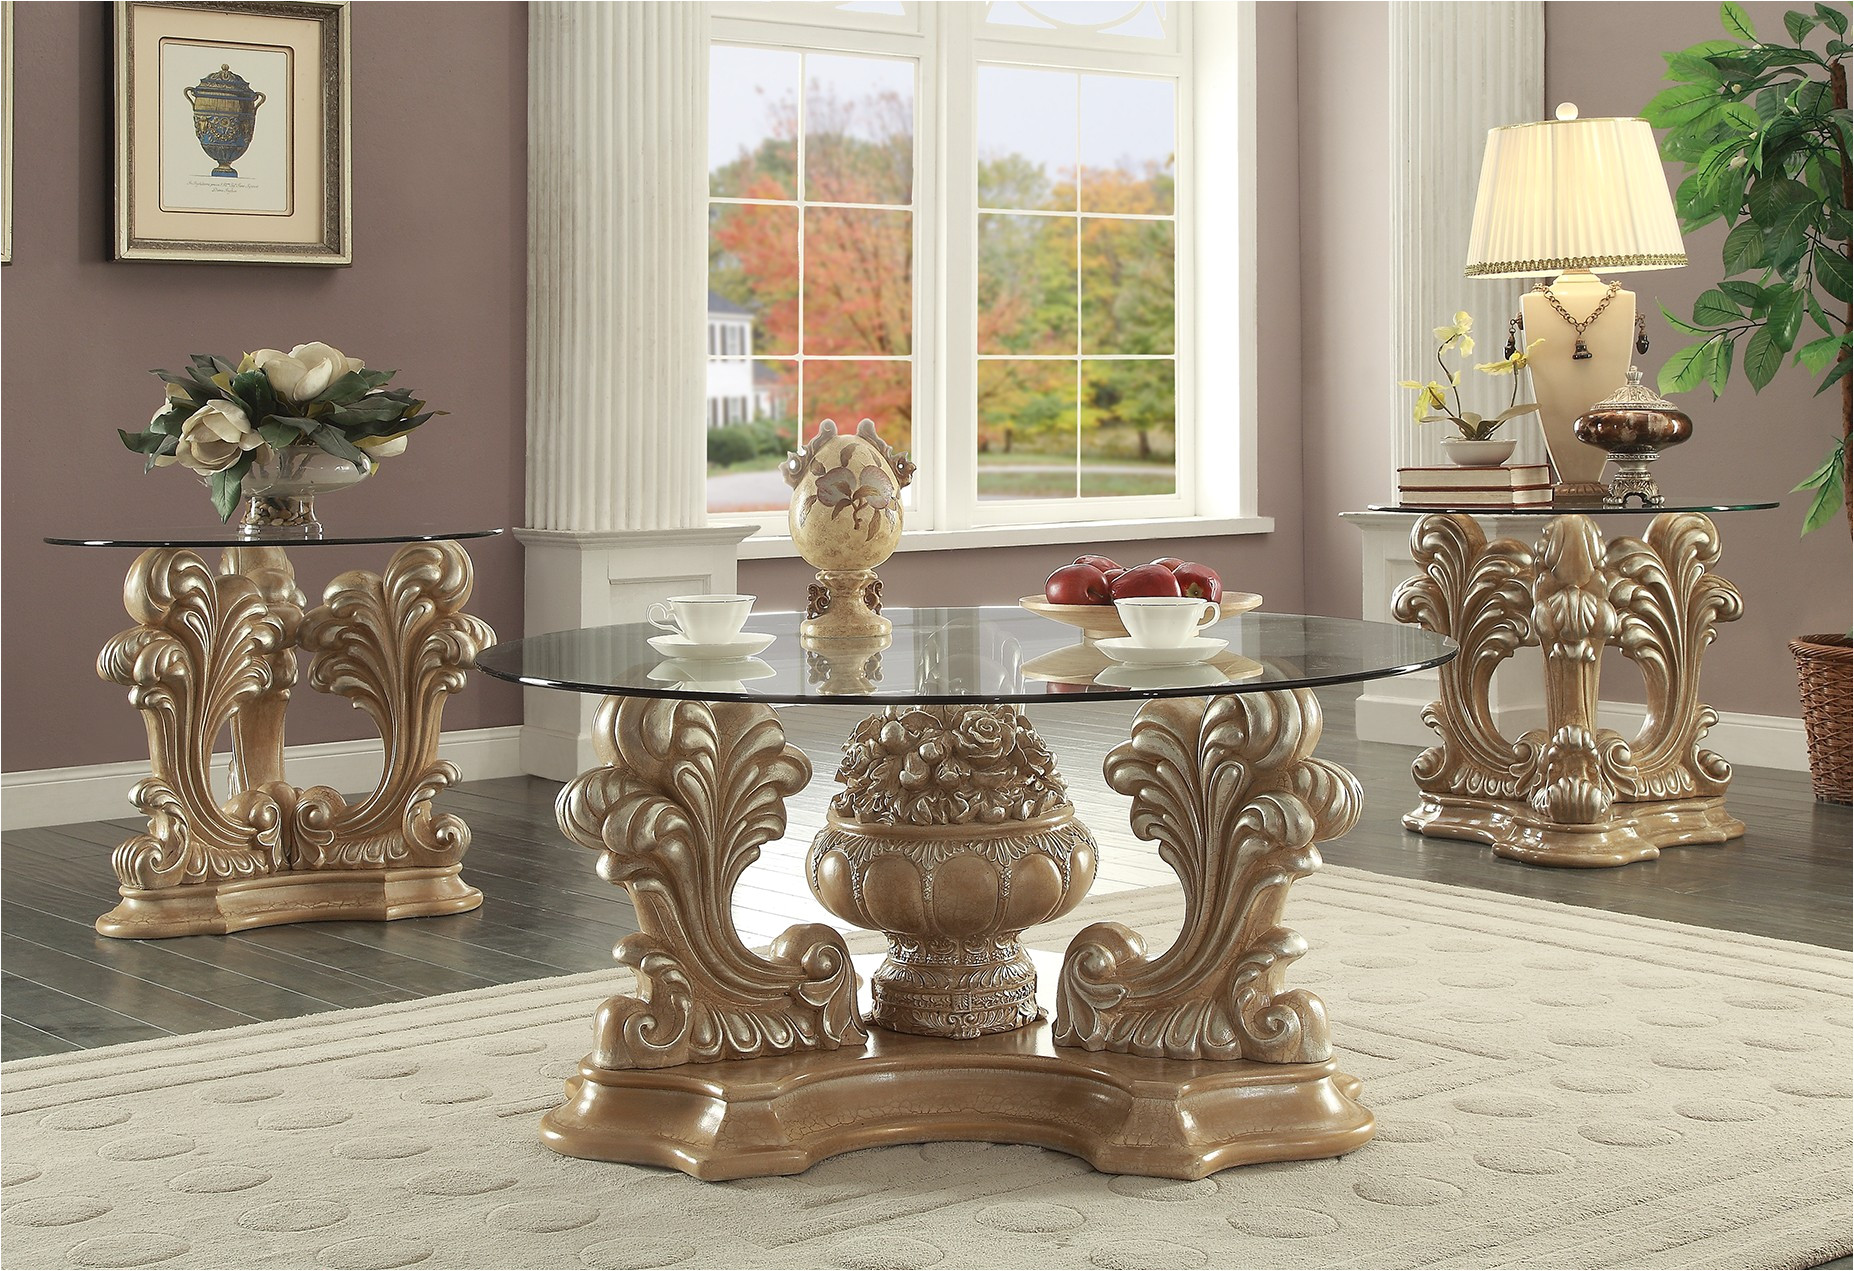 coffee table terrific end tables big lots chaise chairs glass materials upper leg wood carvings decorated